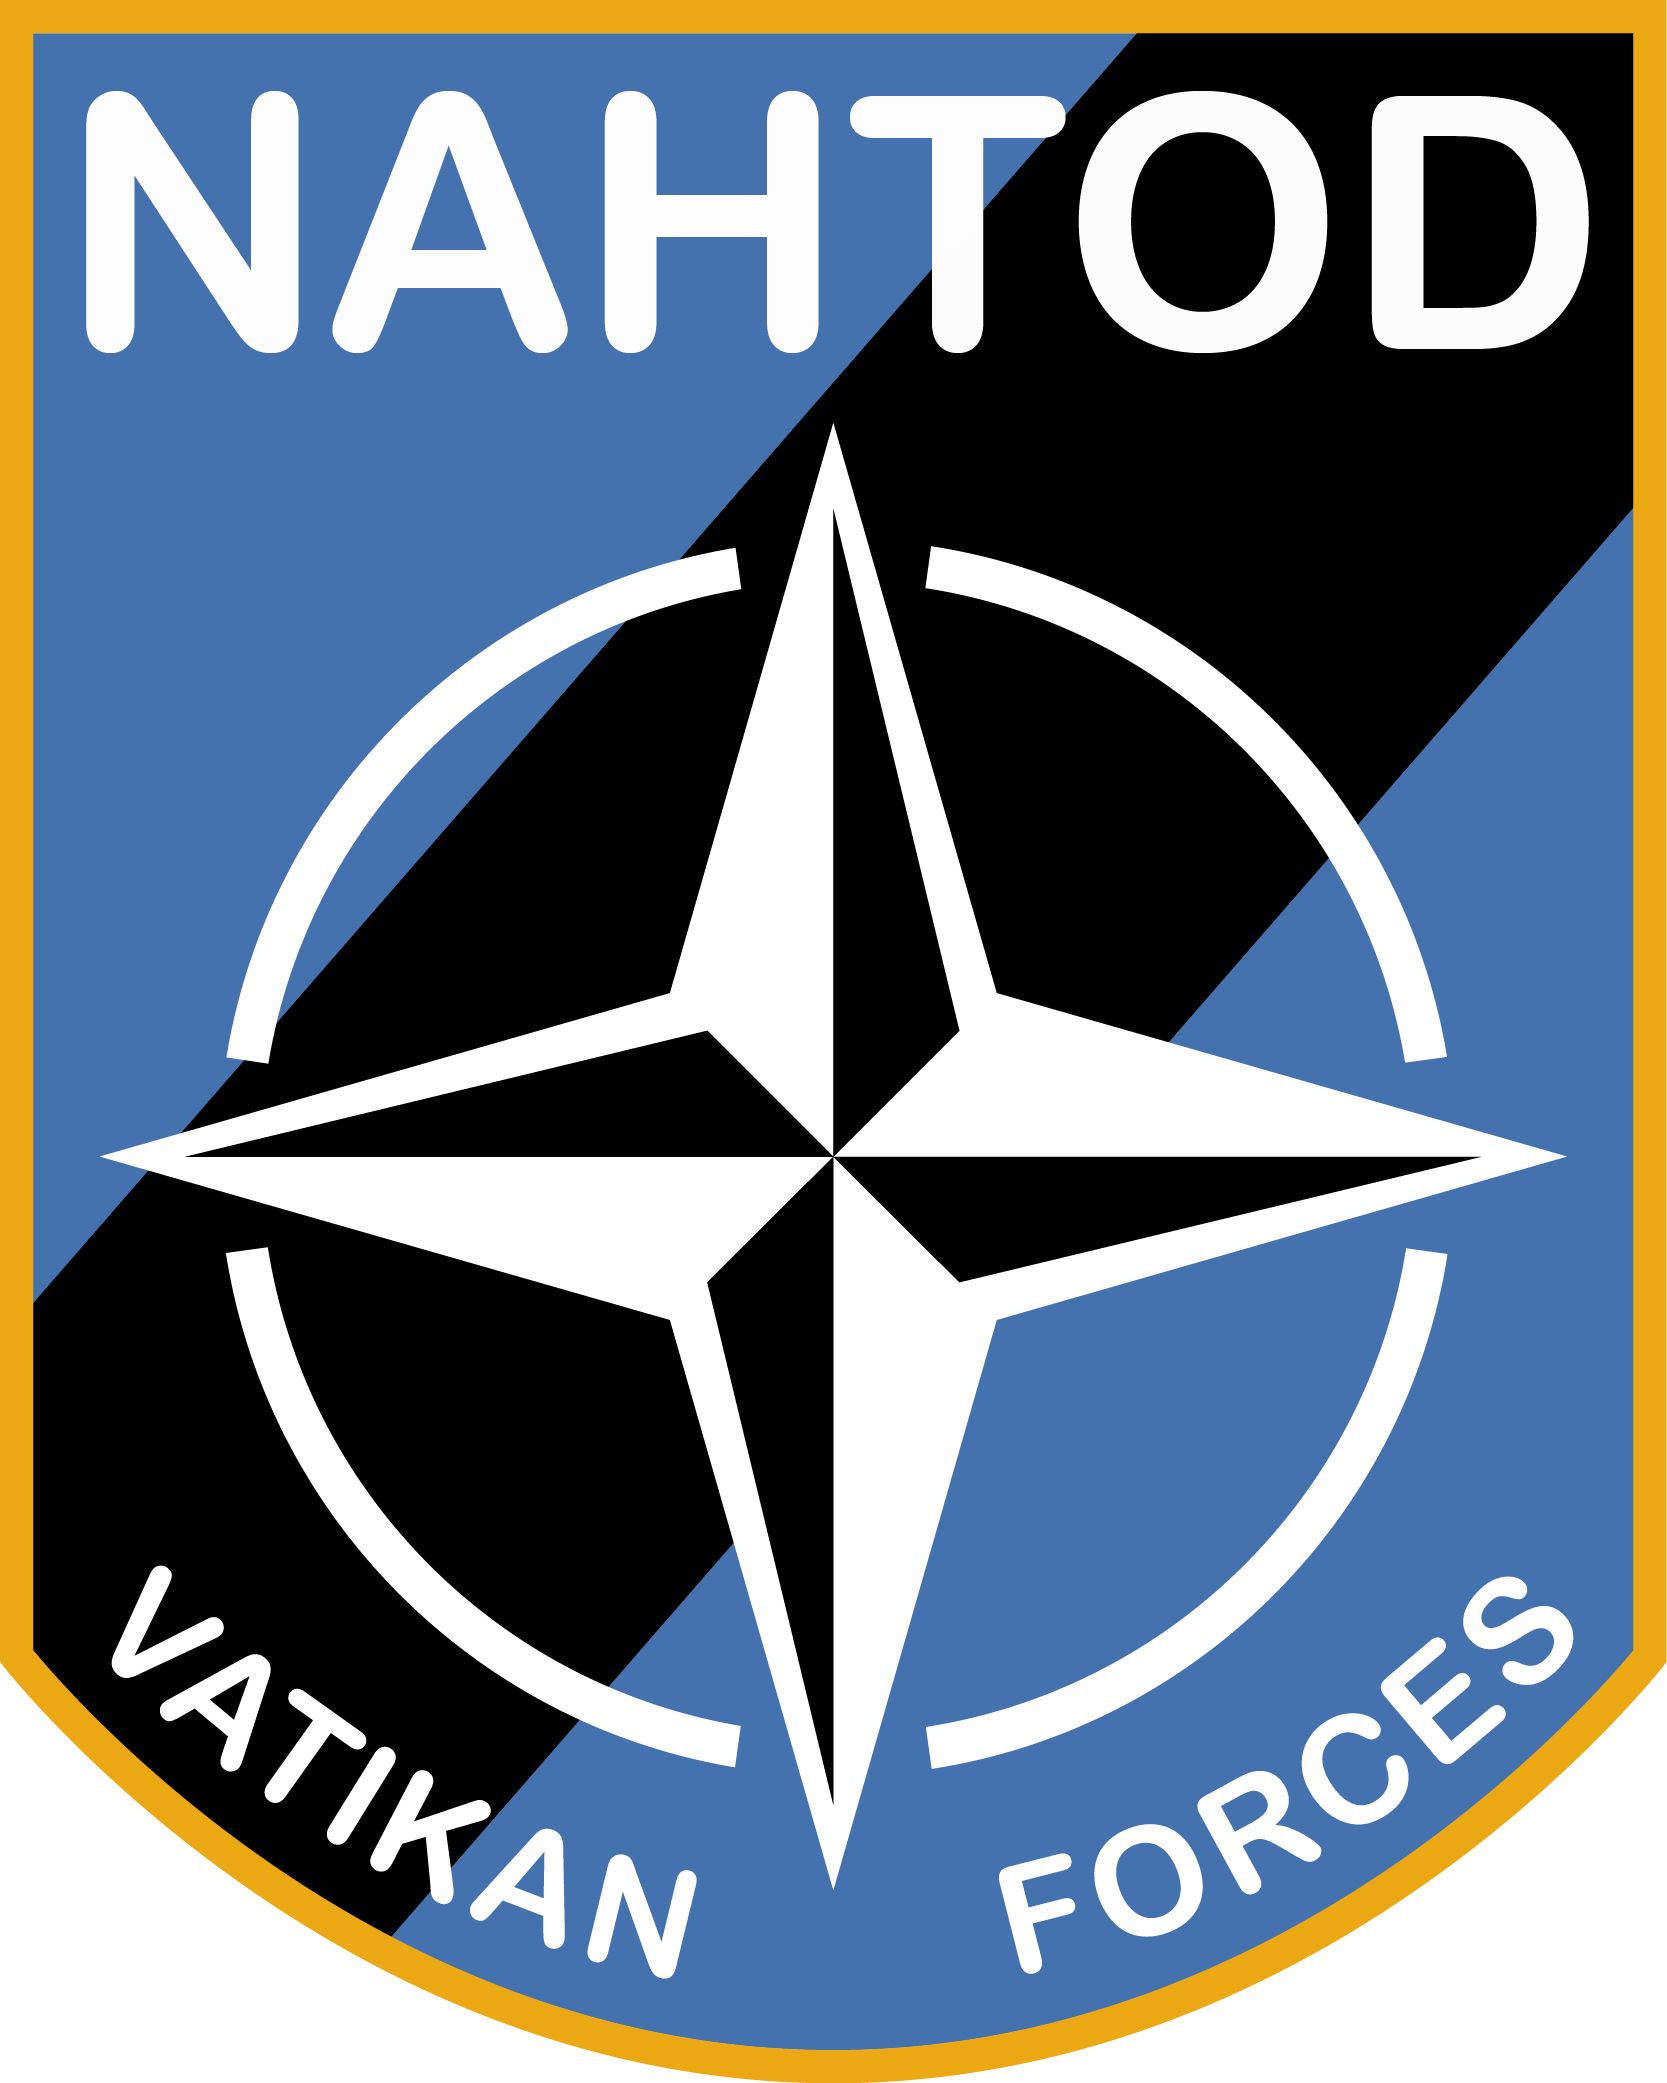 NAHTOD-Vatikan-Forces